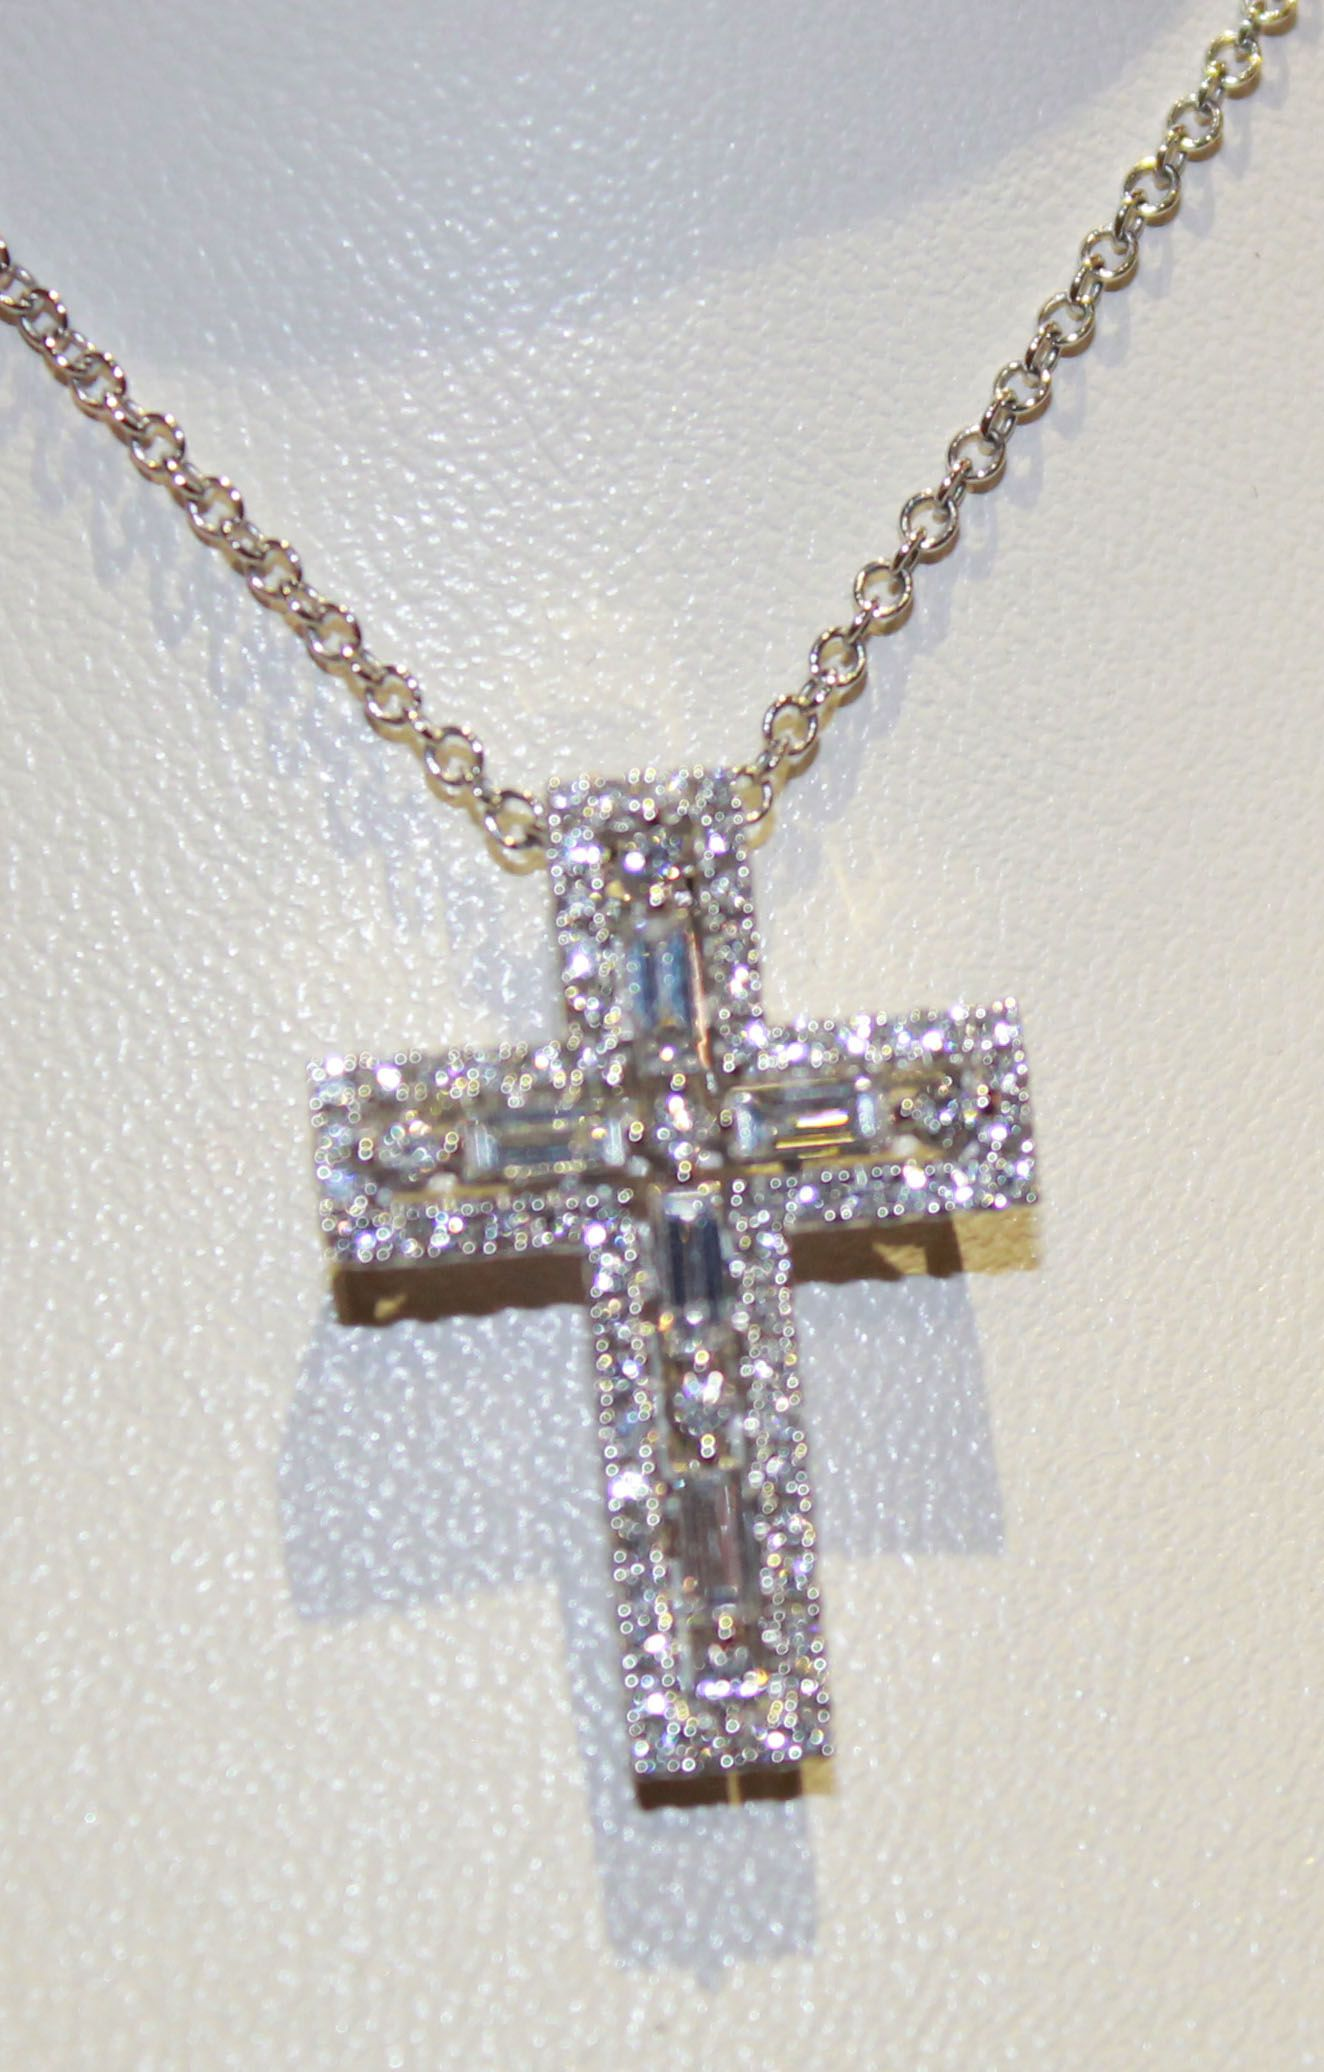 Diamond Cross Necklace Normal Price 3890 50 Off 1945: Wedding Band With Cross Pendant At Websimilar.org